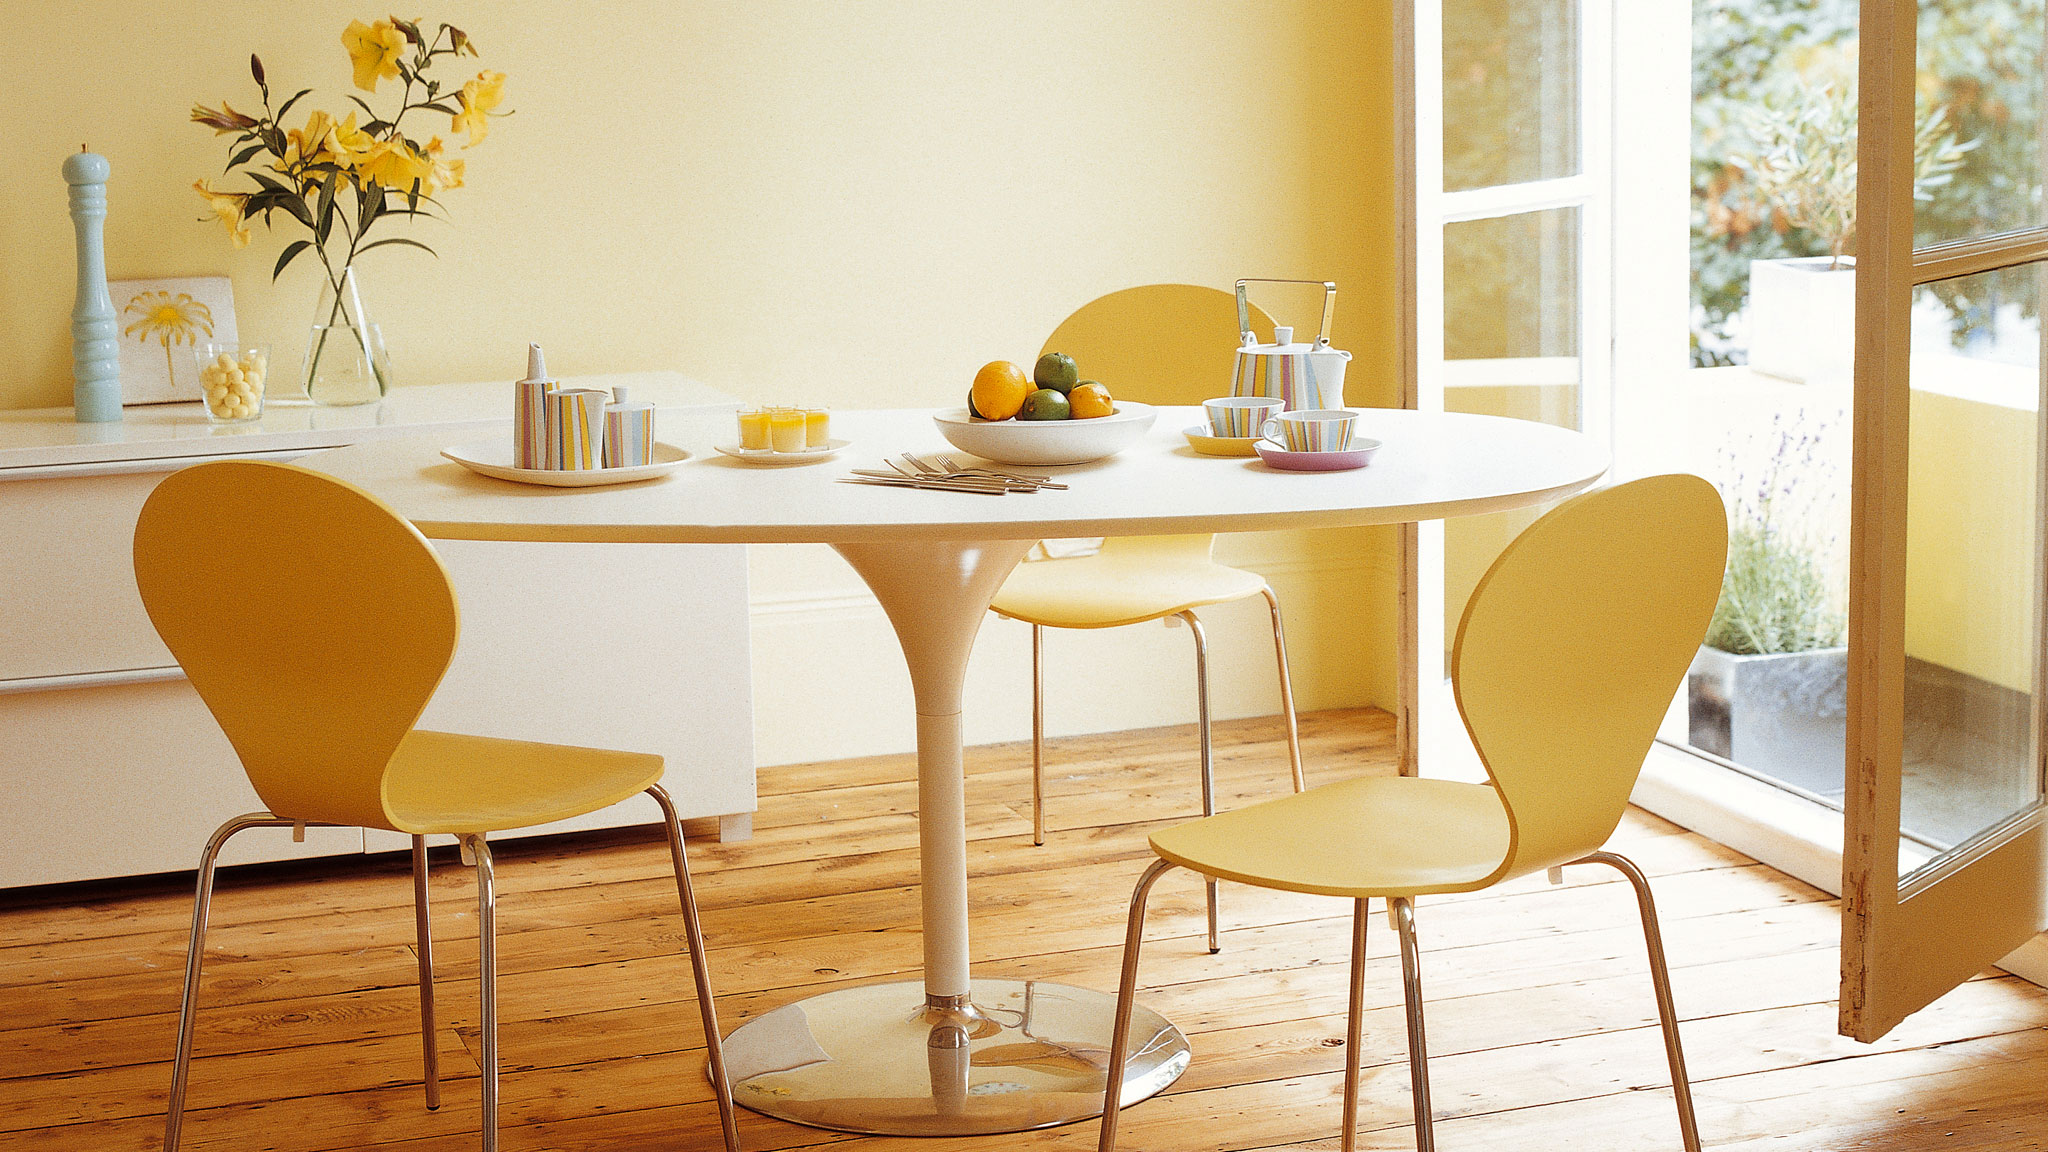 A sunny hue can brighten and warm a dark, dingy space: don't be afraid to use light terracotta or yellow paint colours